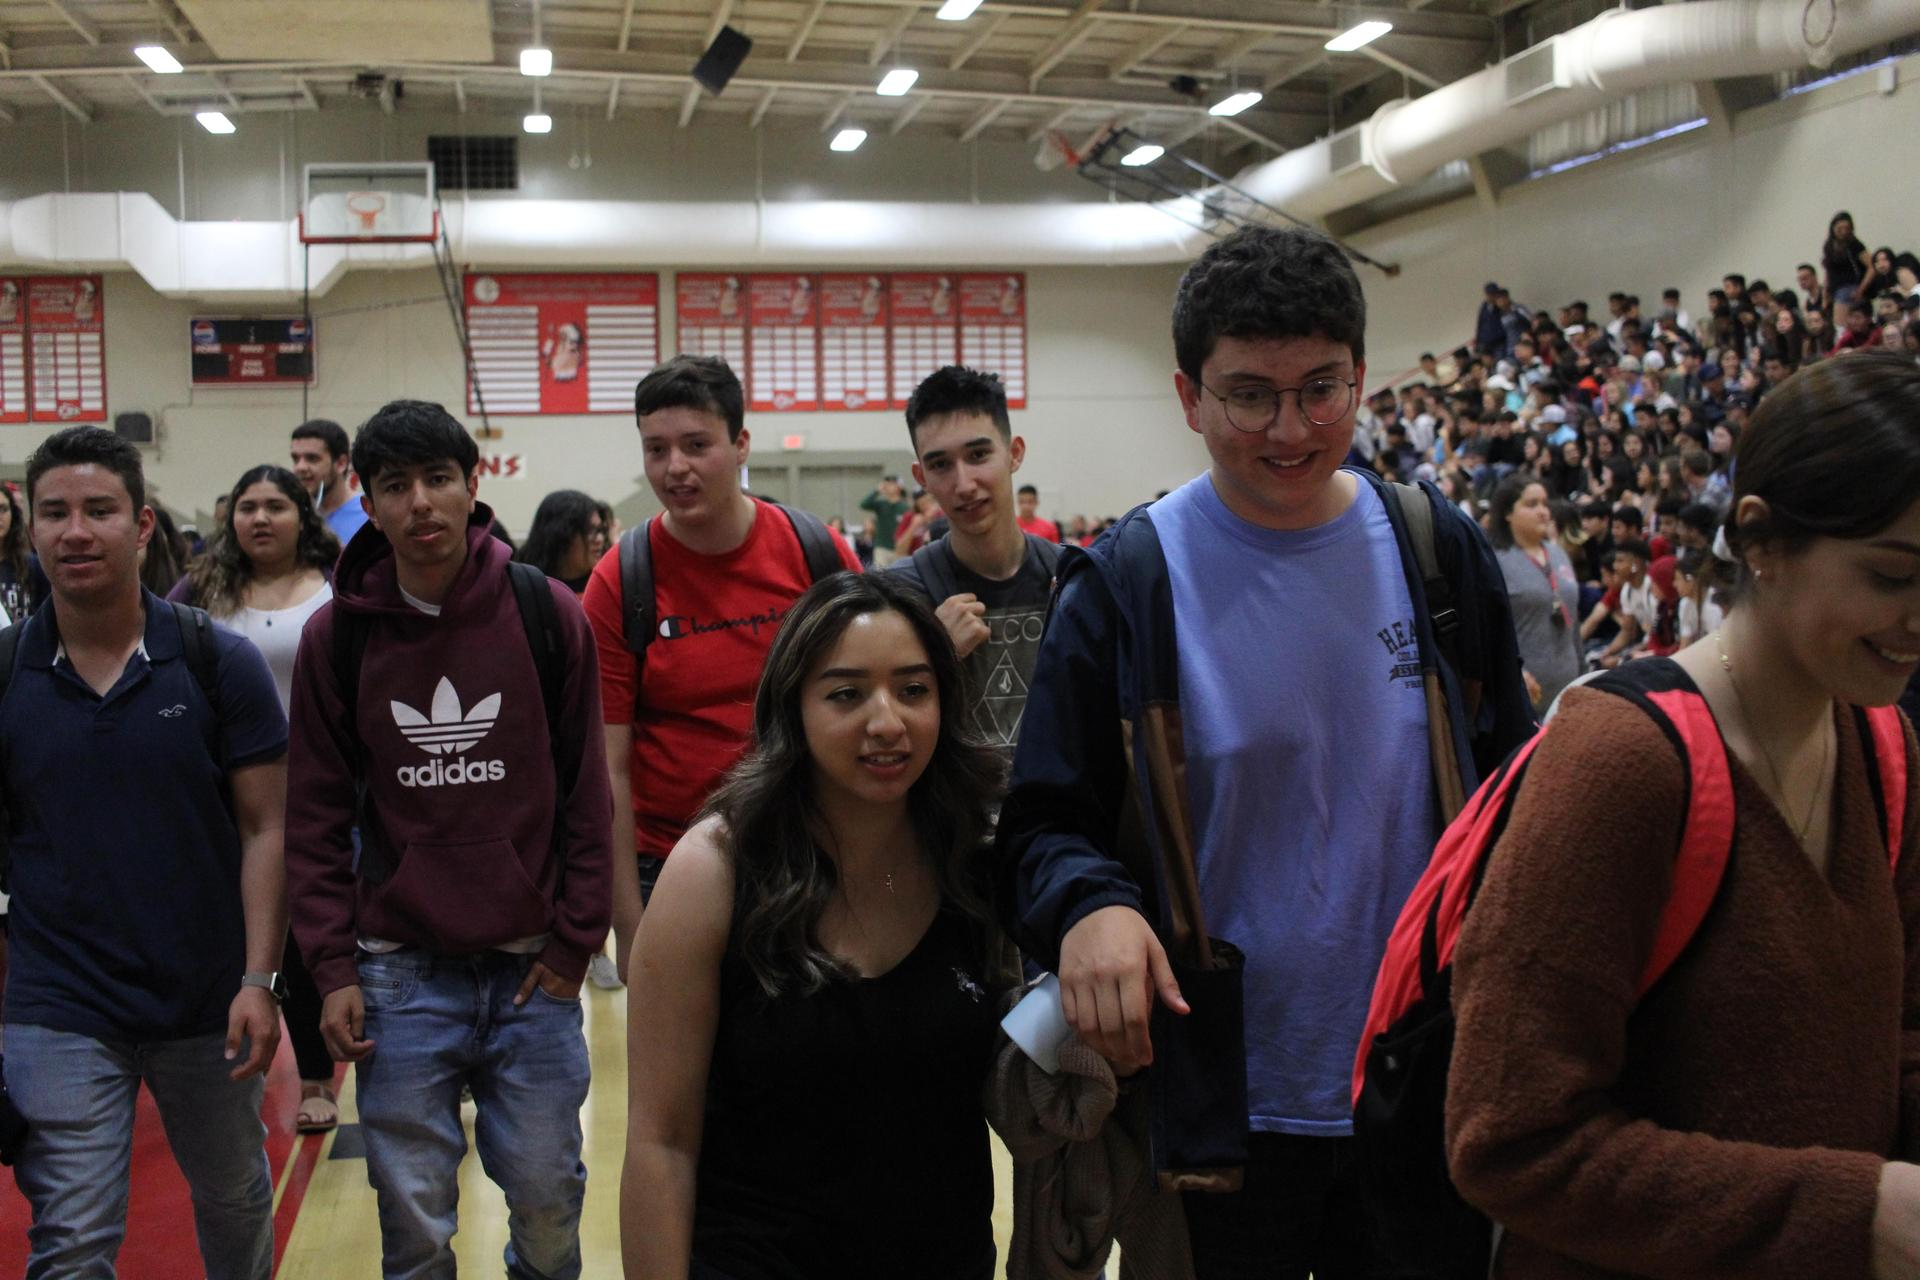 Students at the Senior Appreciation Rally